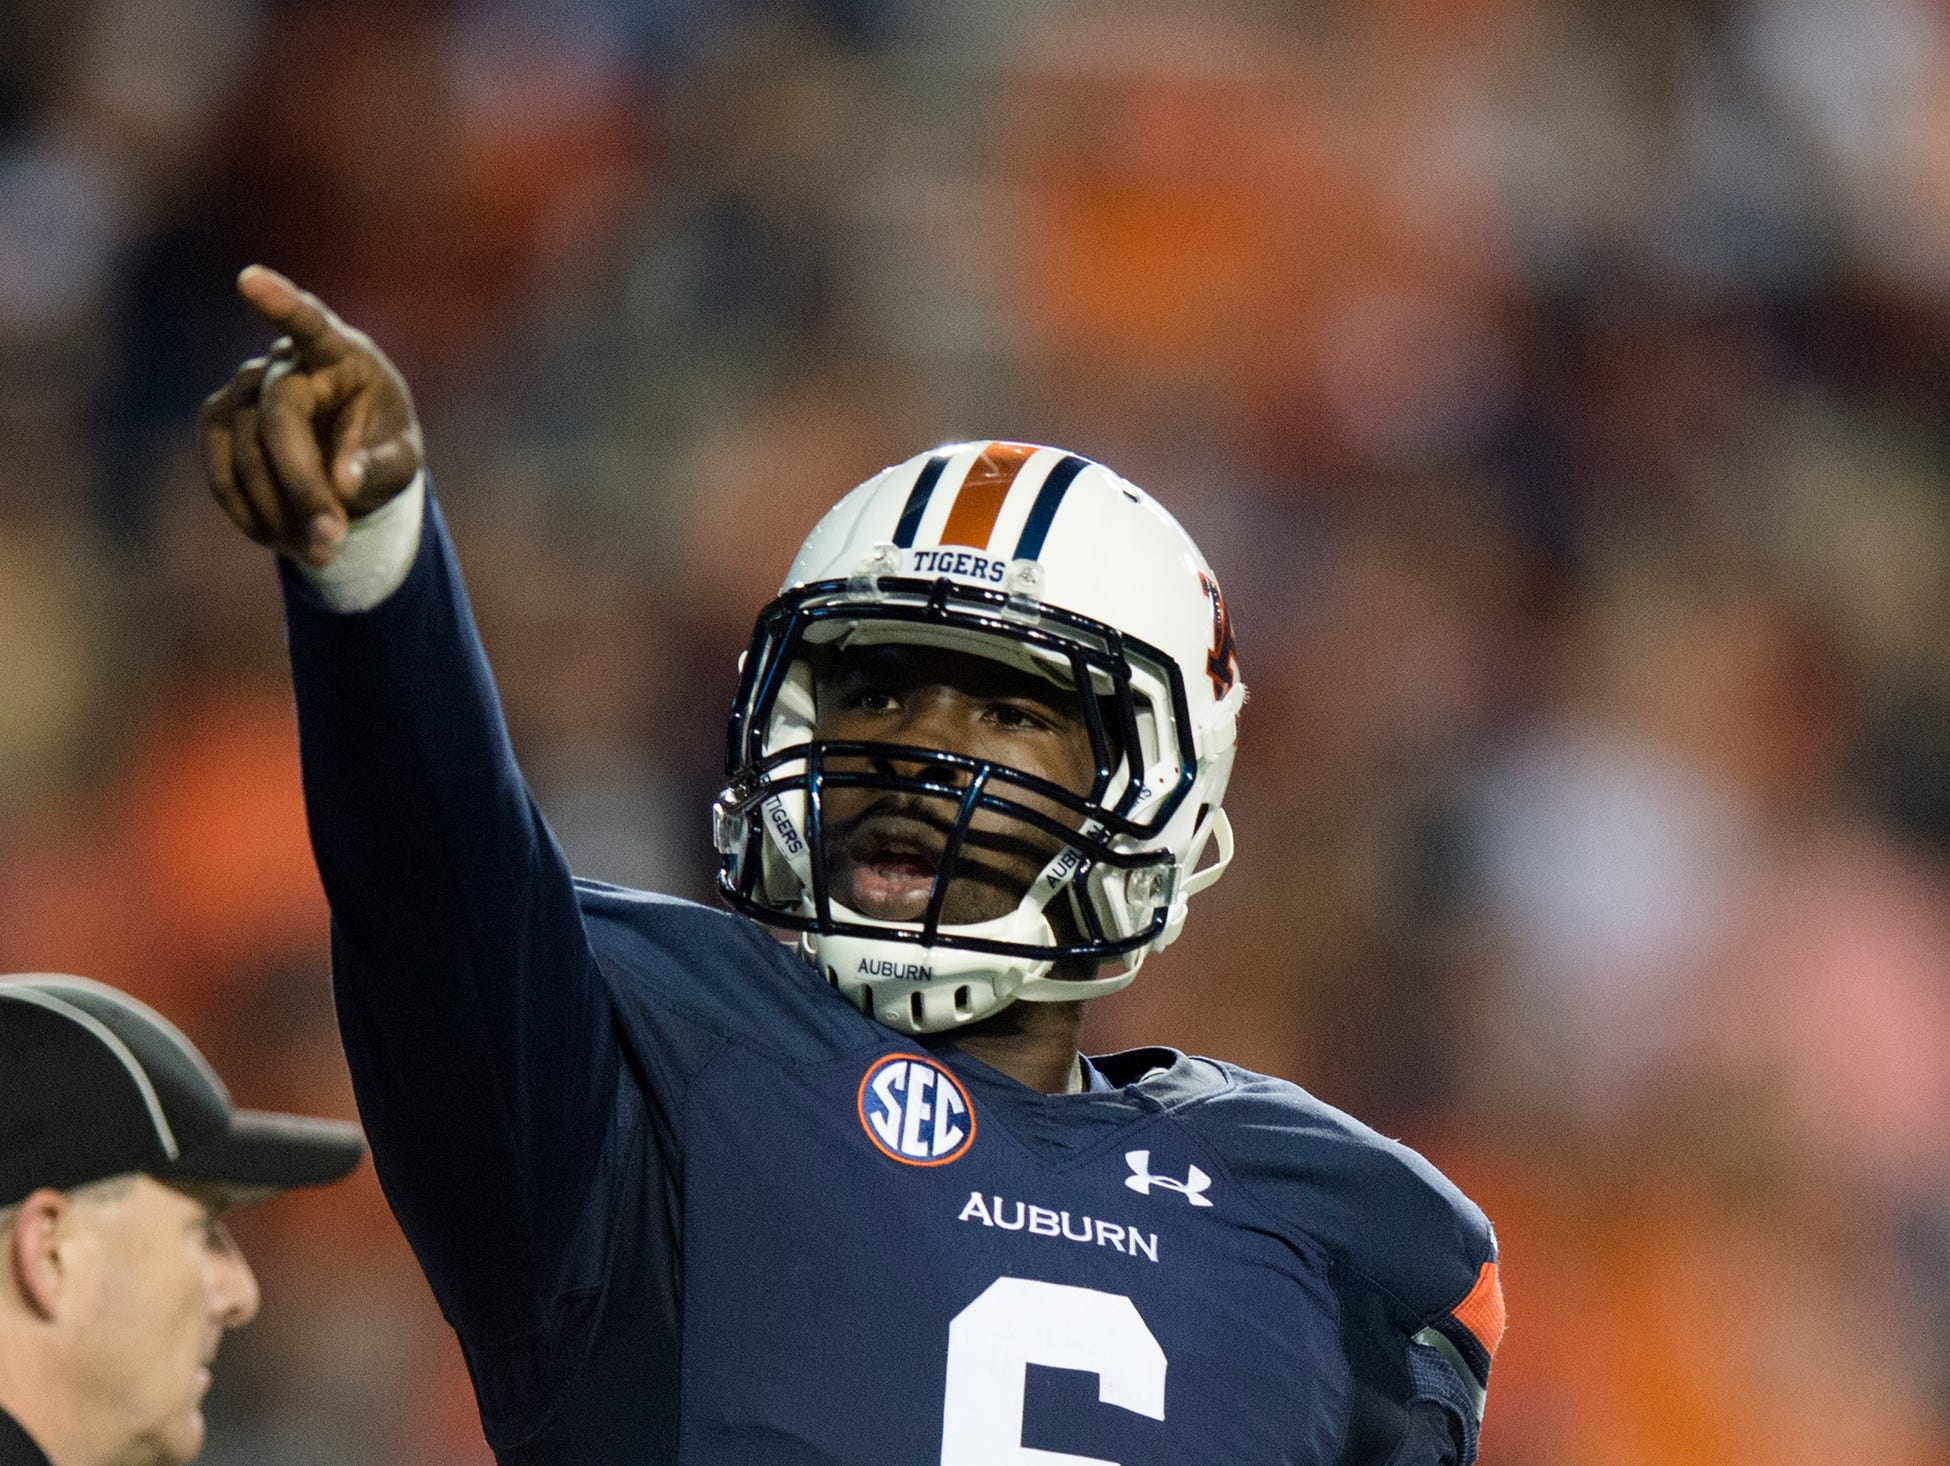 Auburn Tigers quarterback Jeremy Johnson (6) points towards the ROTC section after scoring a touchdown during the NCAA football game between Auburn and Idaho on Saturday, Nov. 21, 2015, at Jordan-Hare Stadium in Auburn, Ala. Albert Cesare / Advertiser